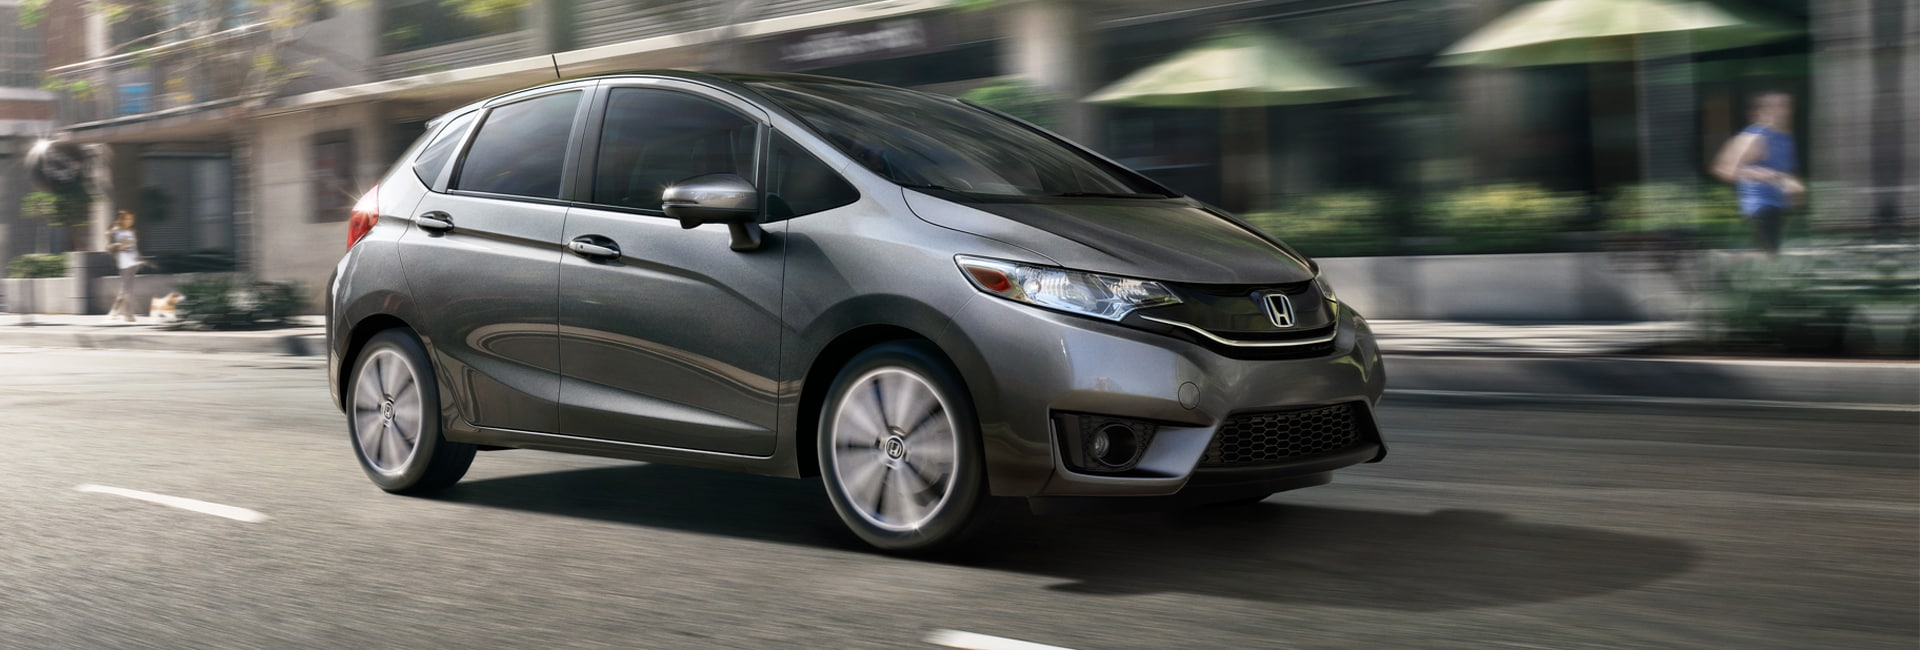 New 2017 Honda Fit Gray Exterior